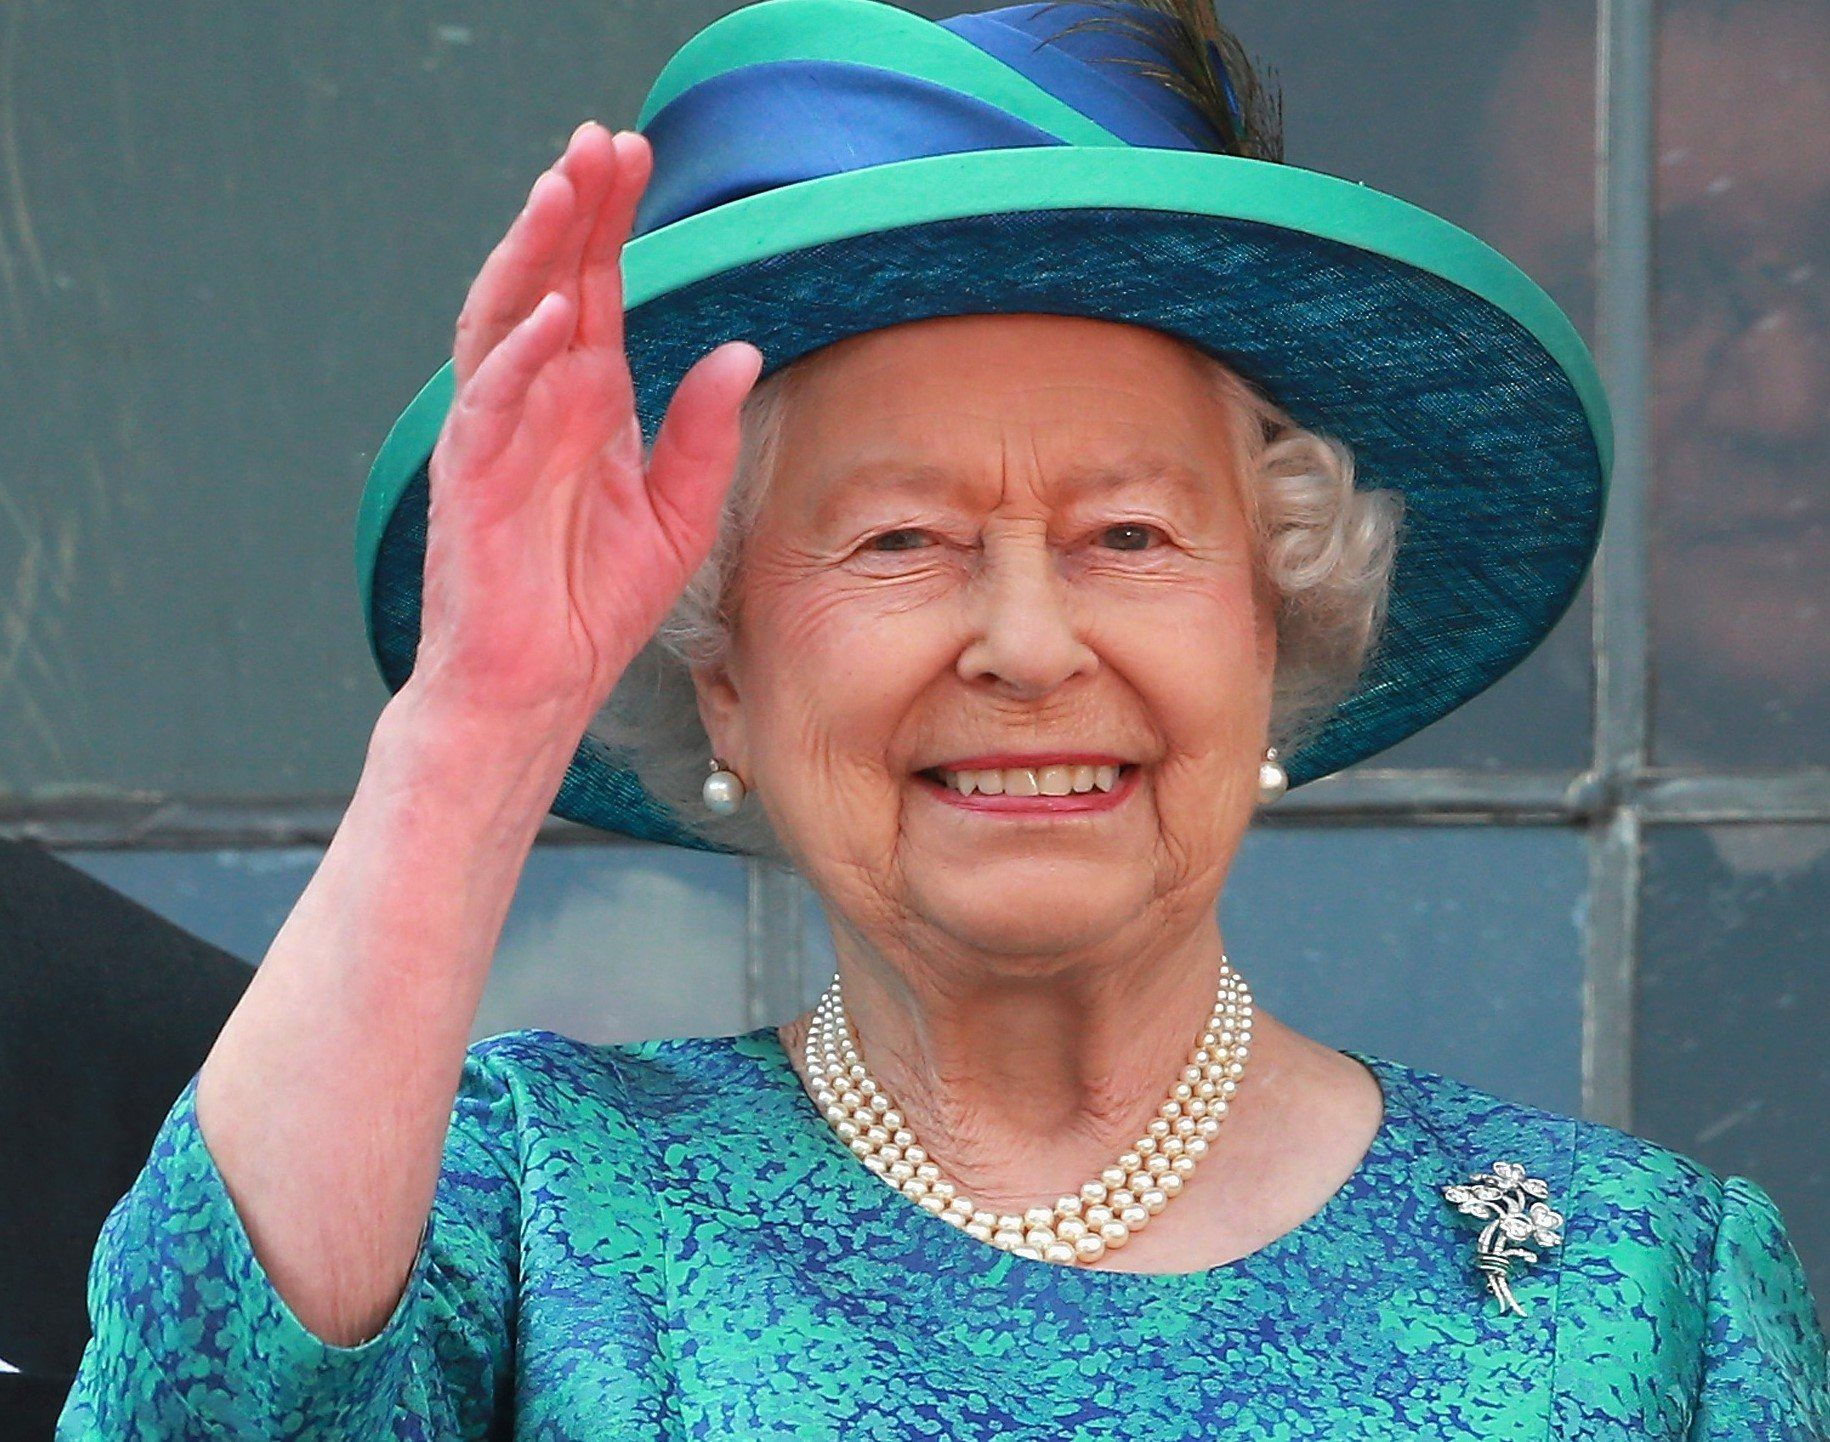 The 1 Nail Polish Color Kate Middleton And Meghan Markle Are Allowed To Wear According To The Queen The Cheat Sheet Queen Elizabeth Elizabeth Ii Her Majesty The Queen